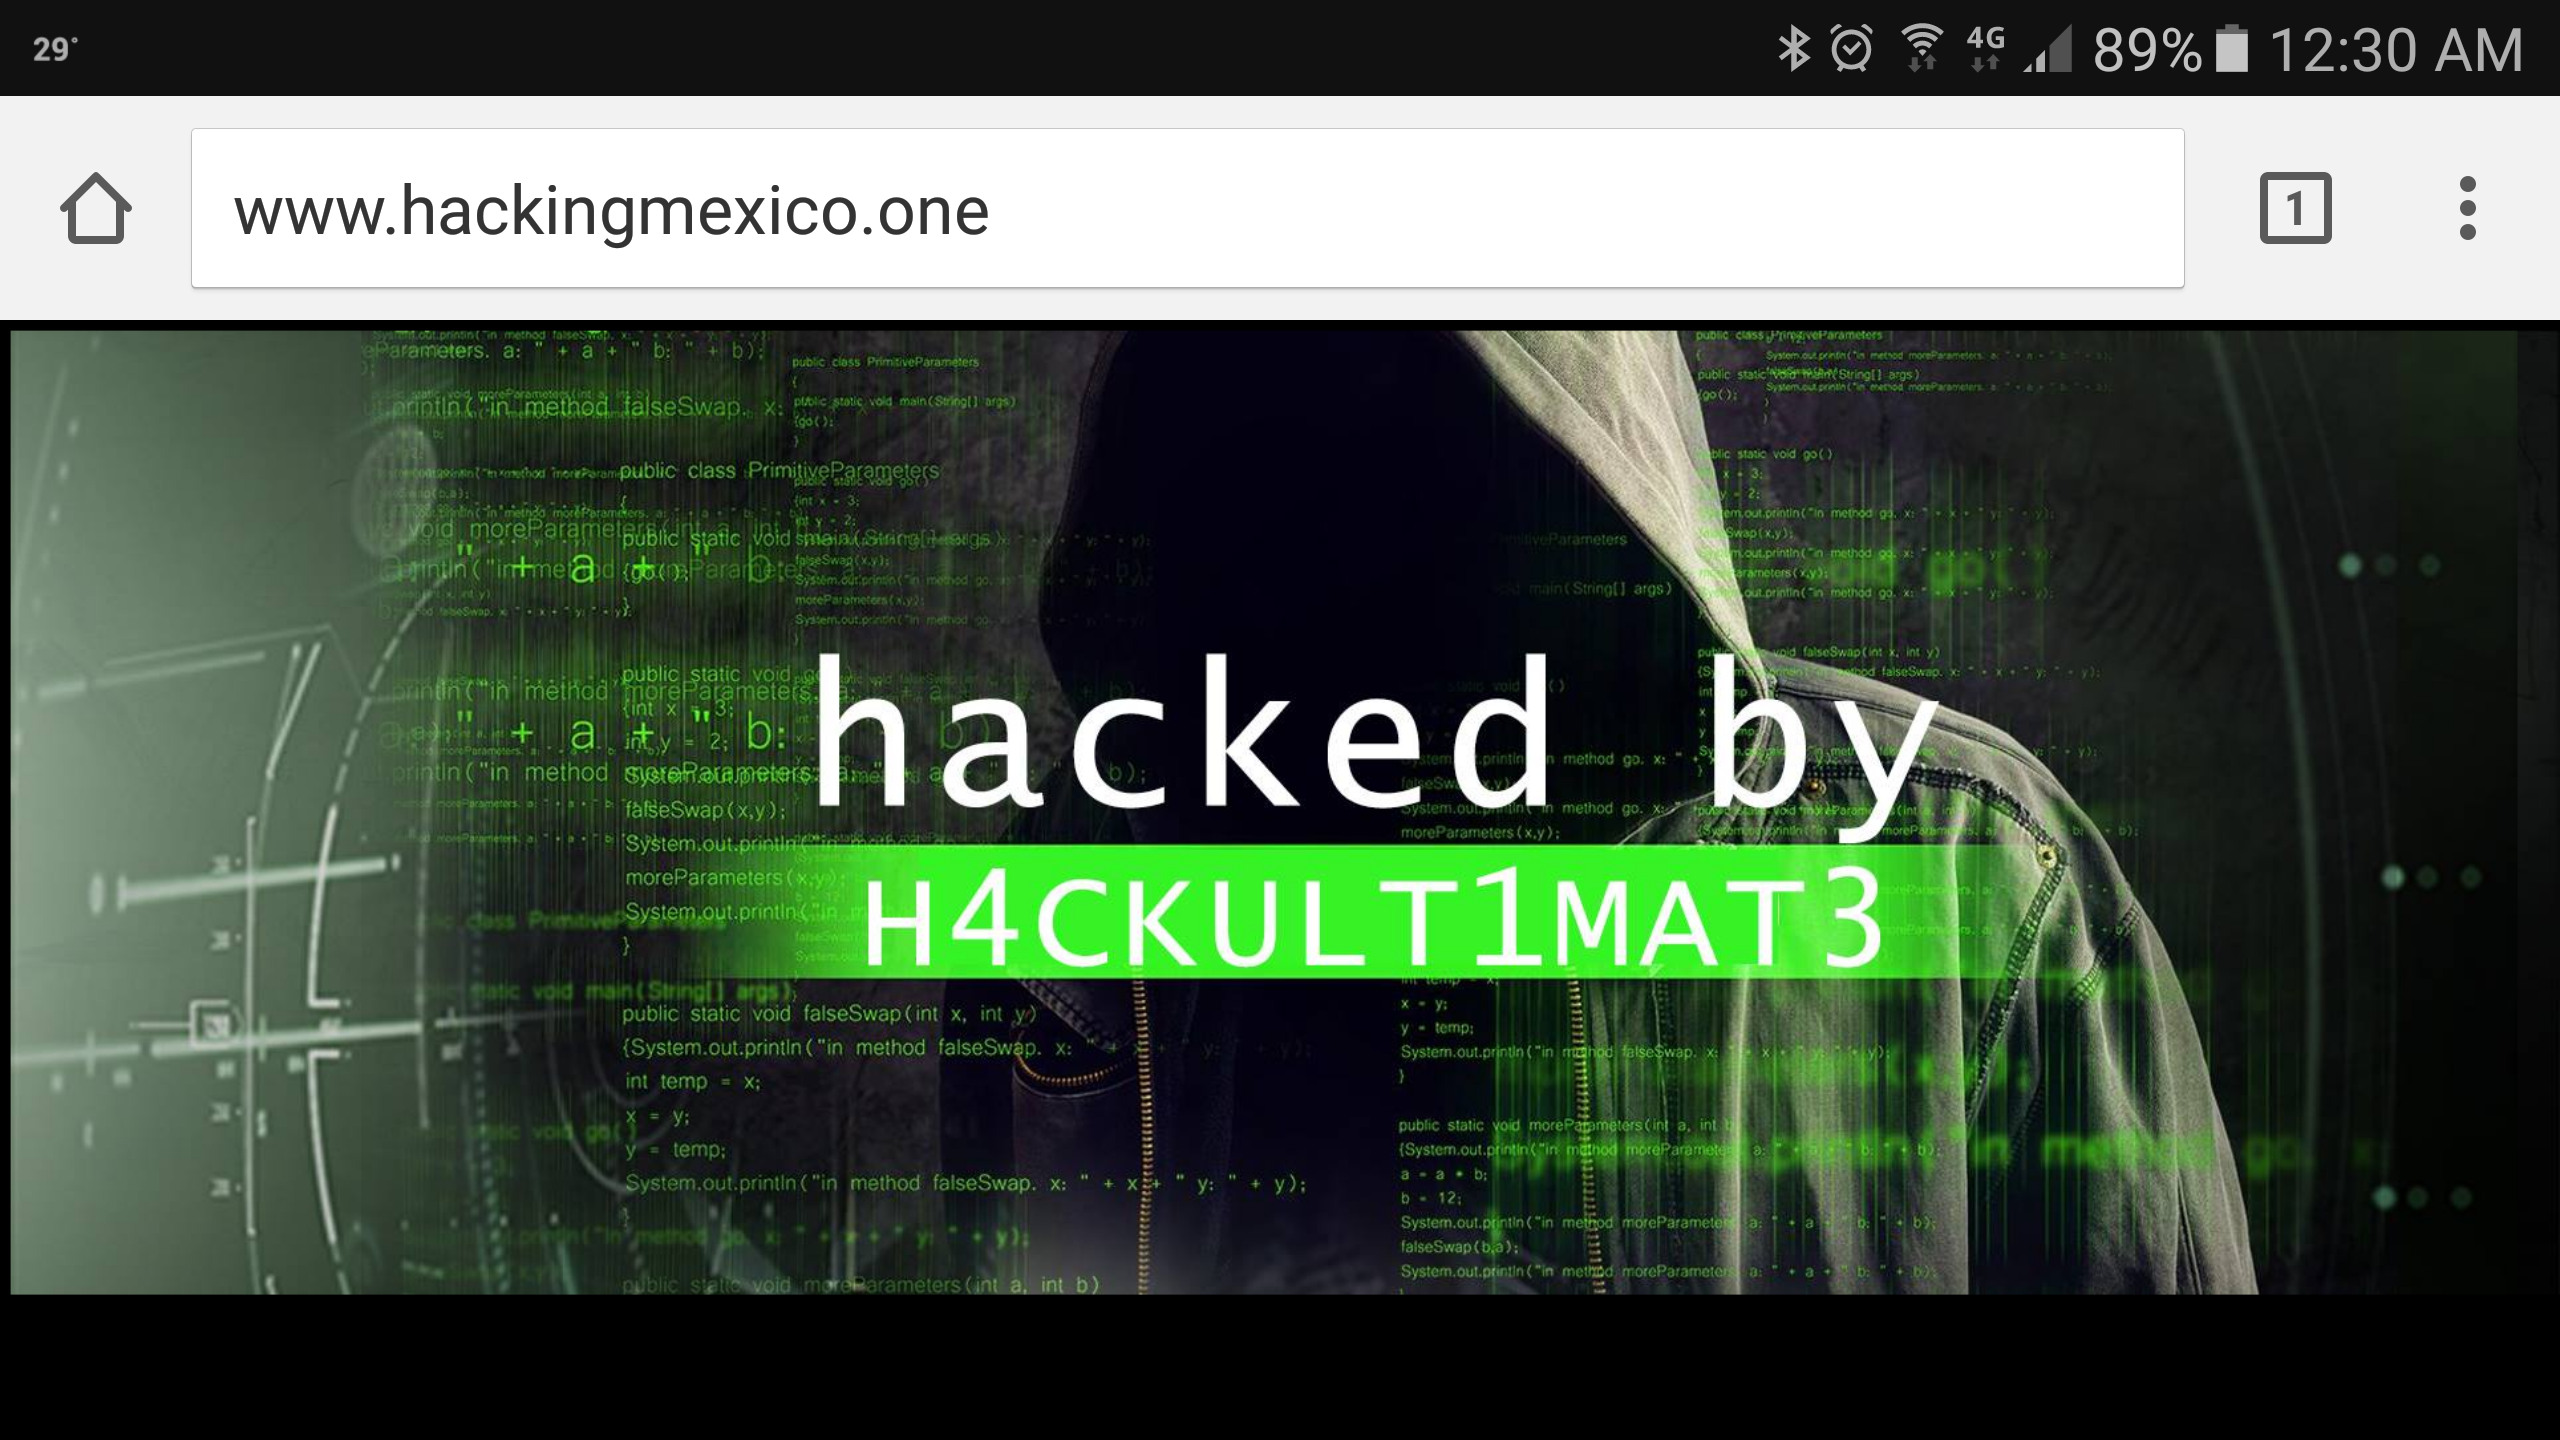 Hack Ultimate VS Hacking Mexico